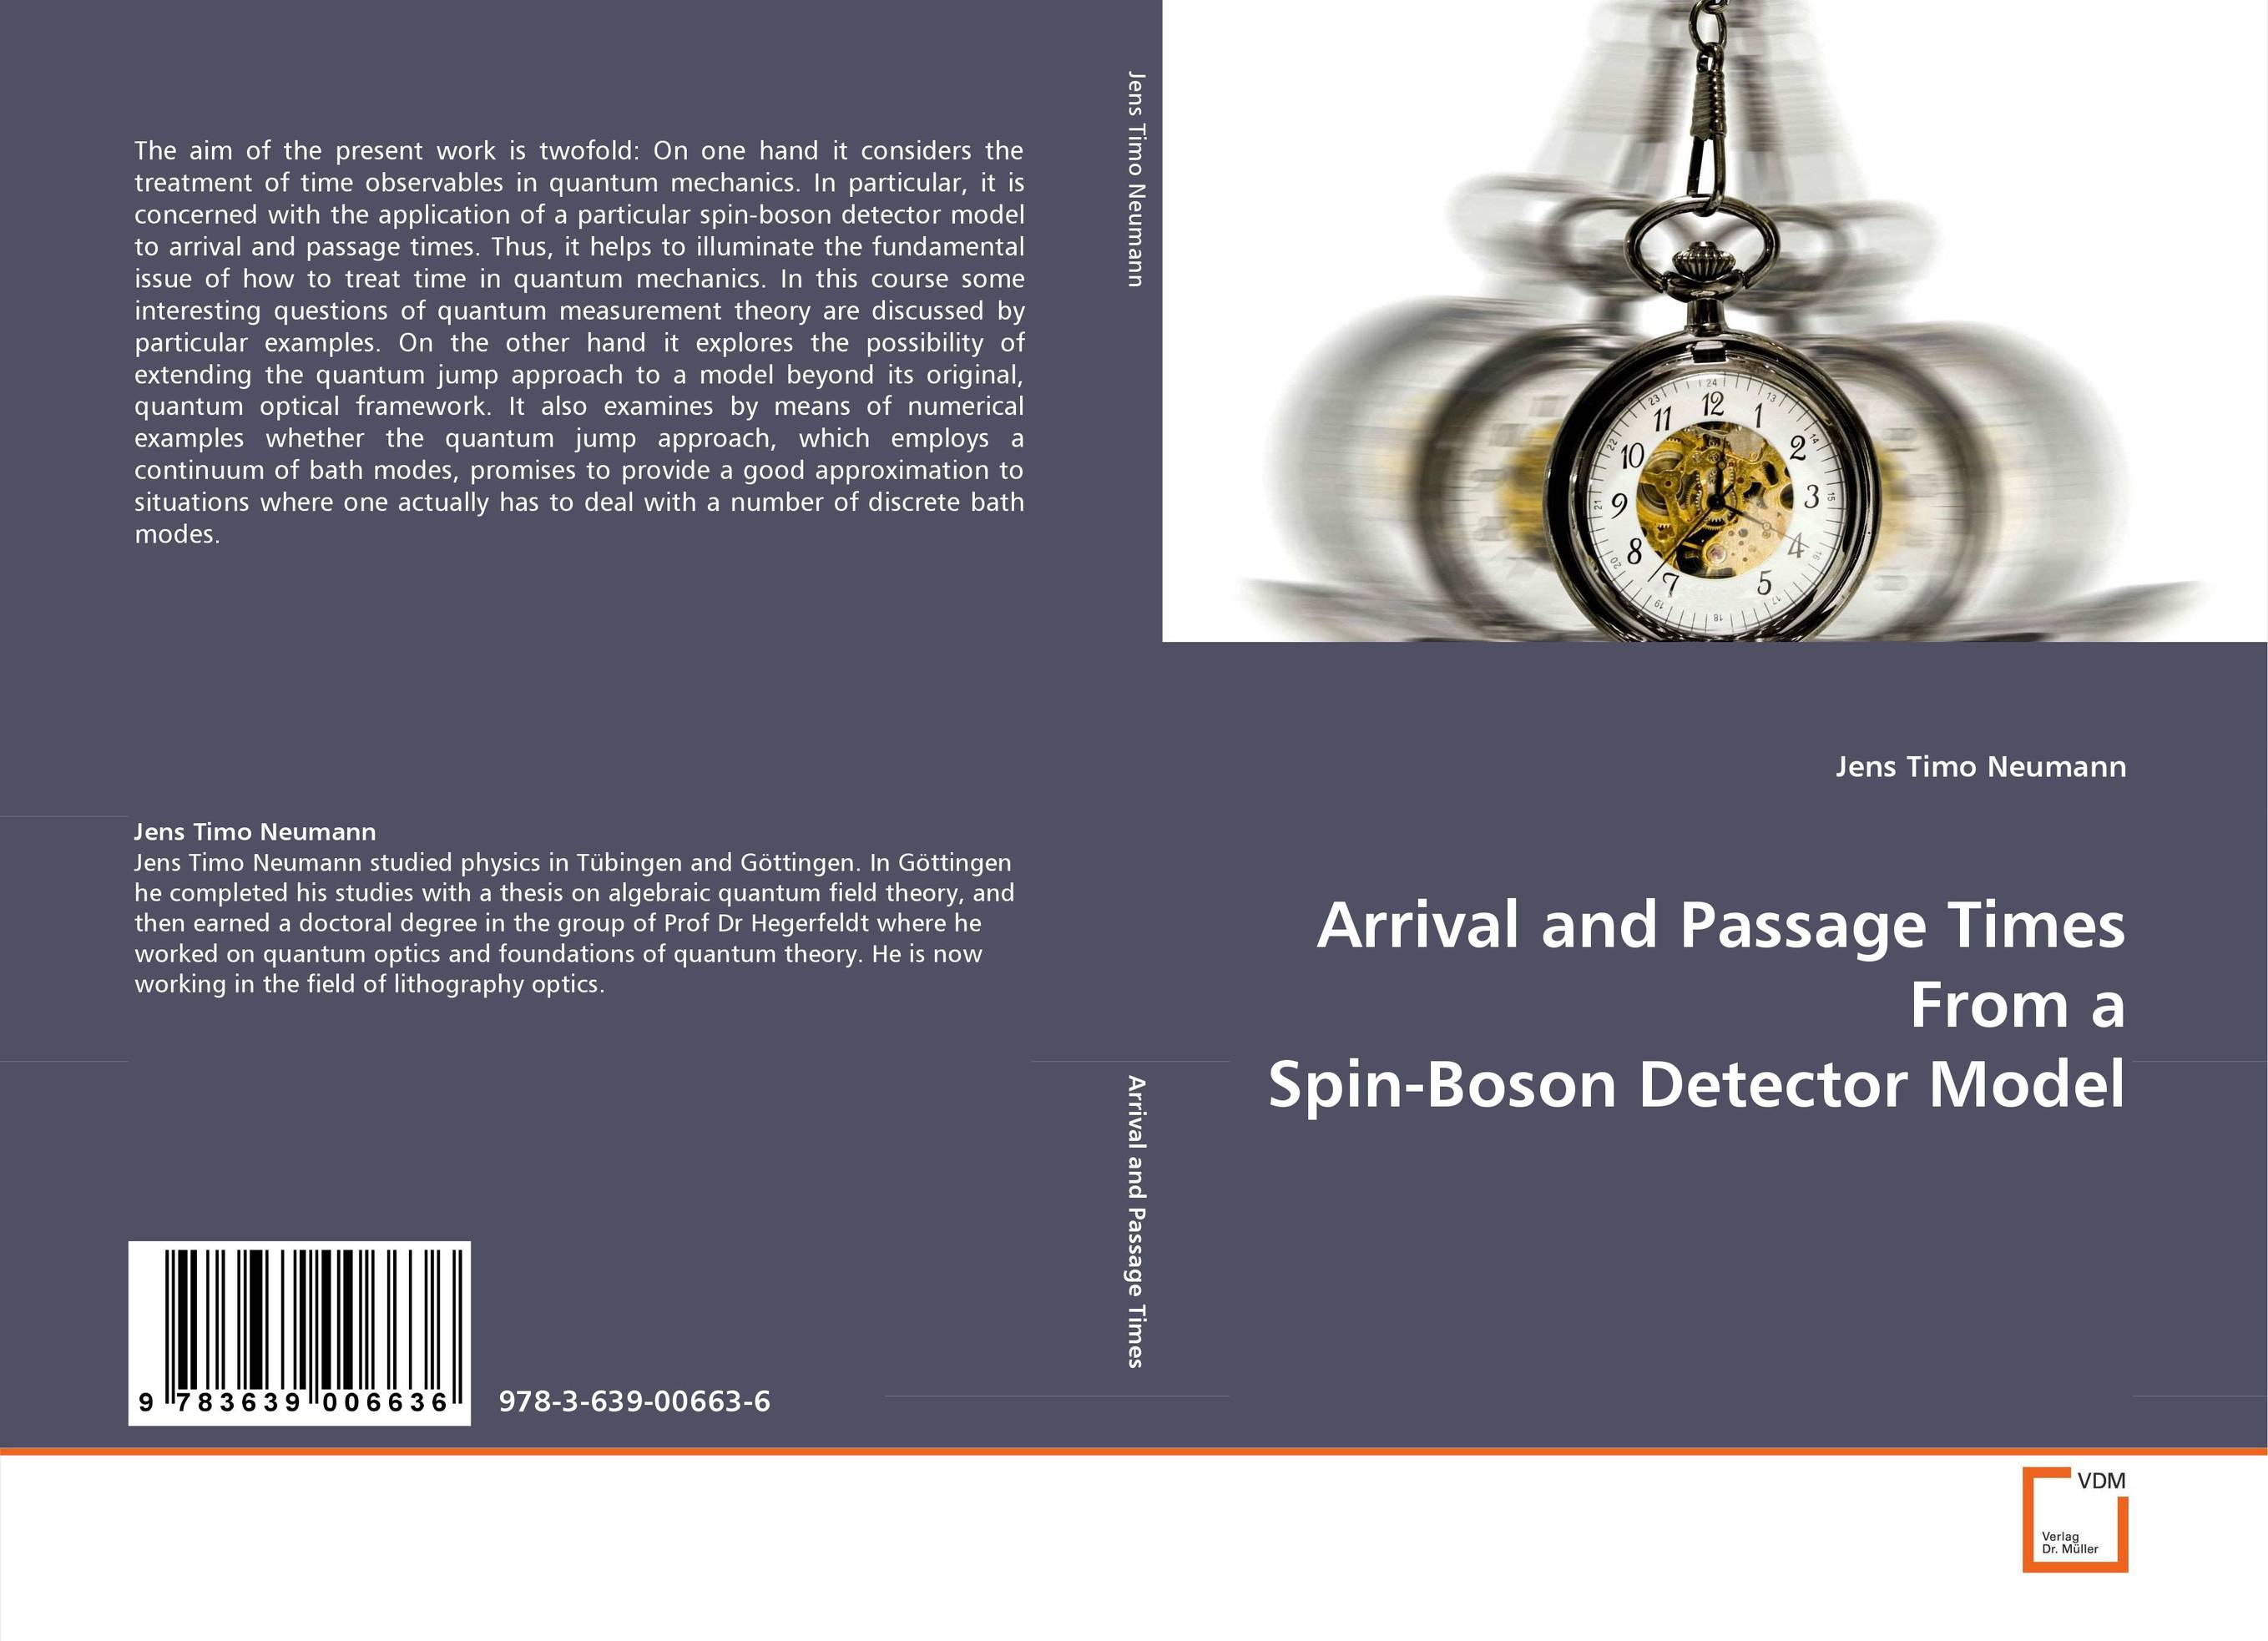 Arrival and Passage Times From a Spin-Boson Detector Model